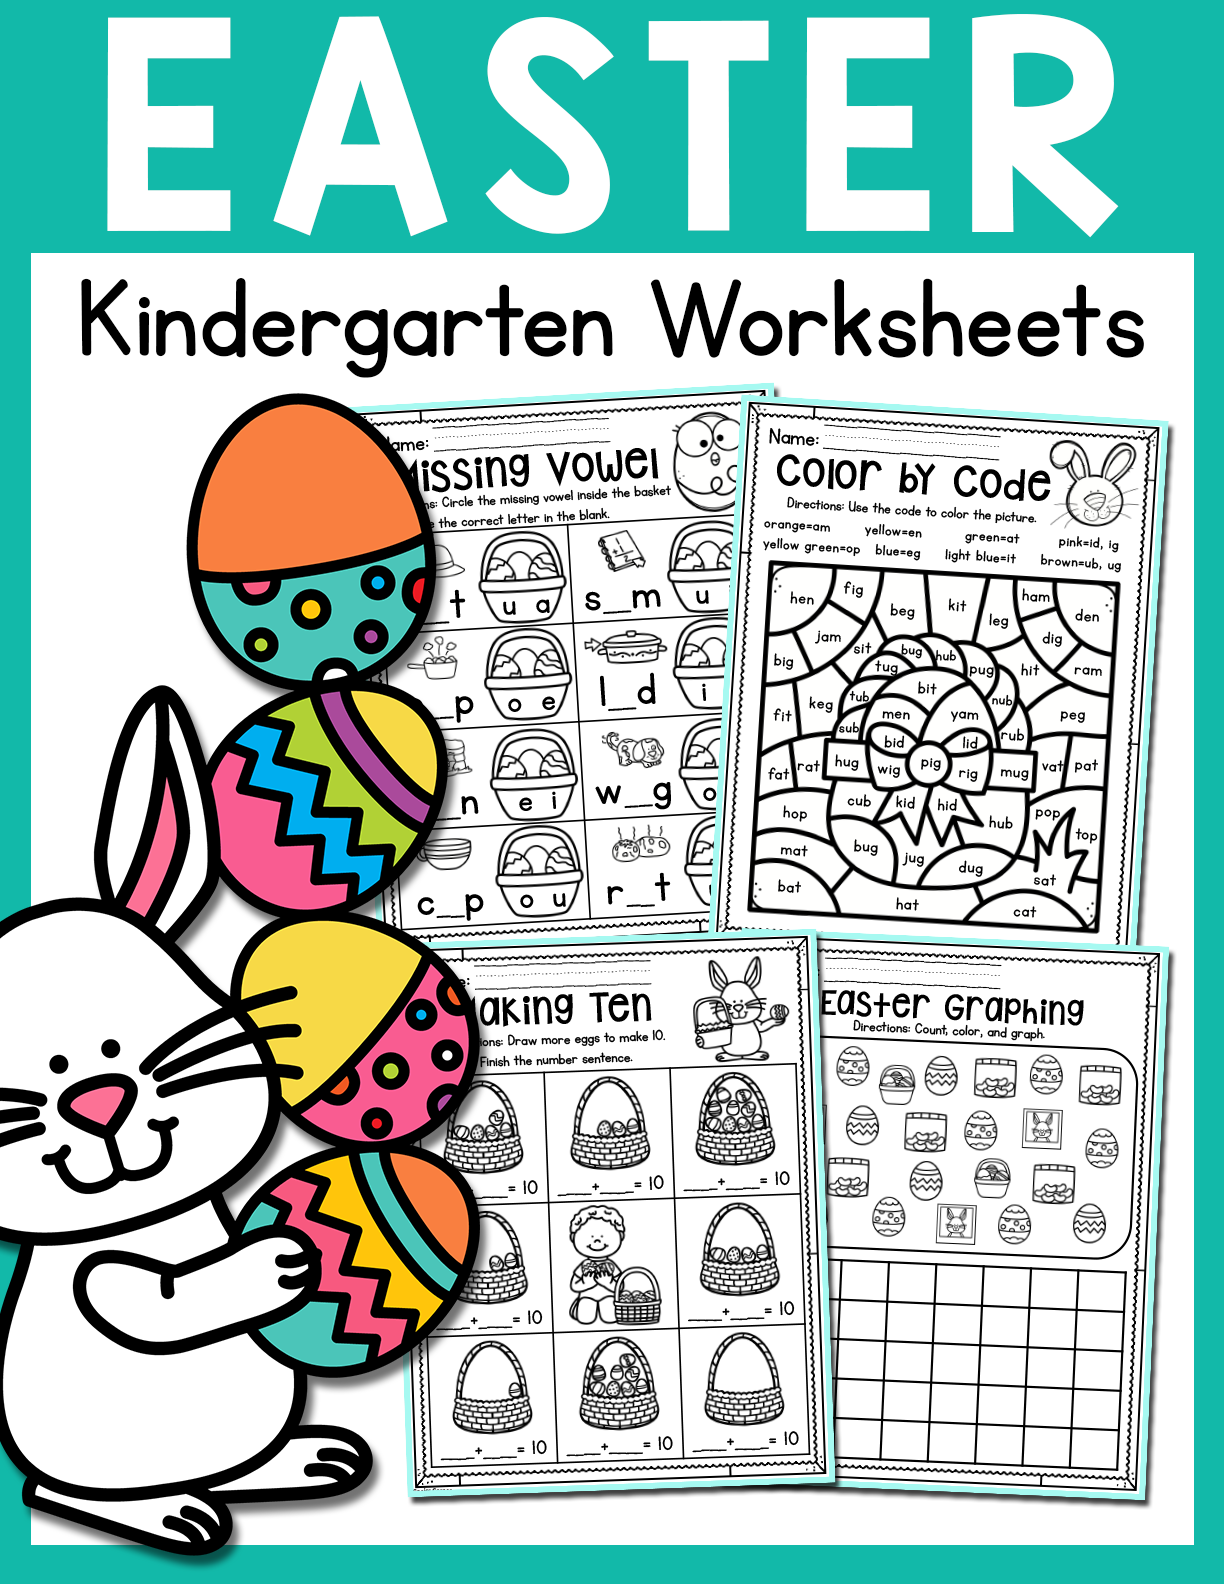 Easter Kindergarten Worksheets for April